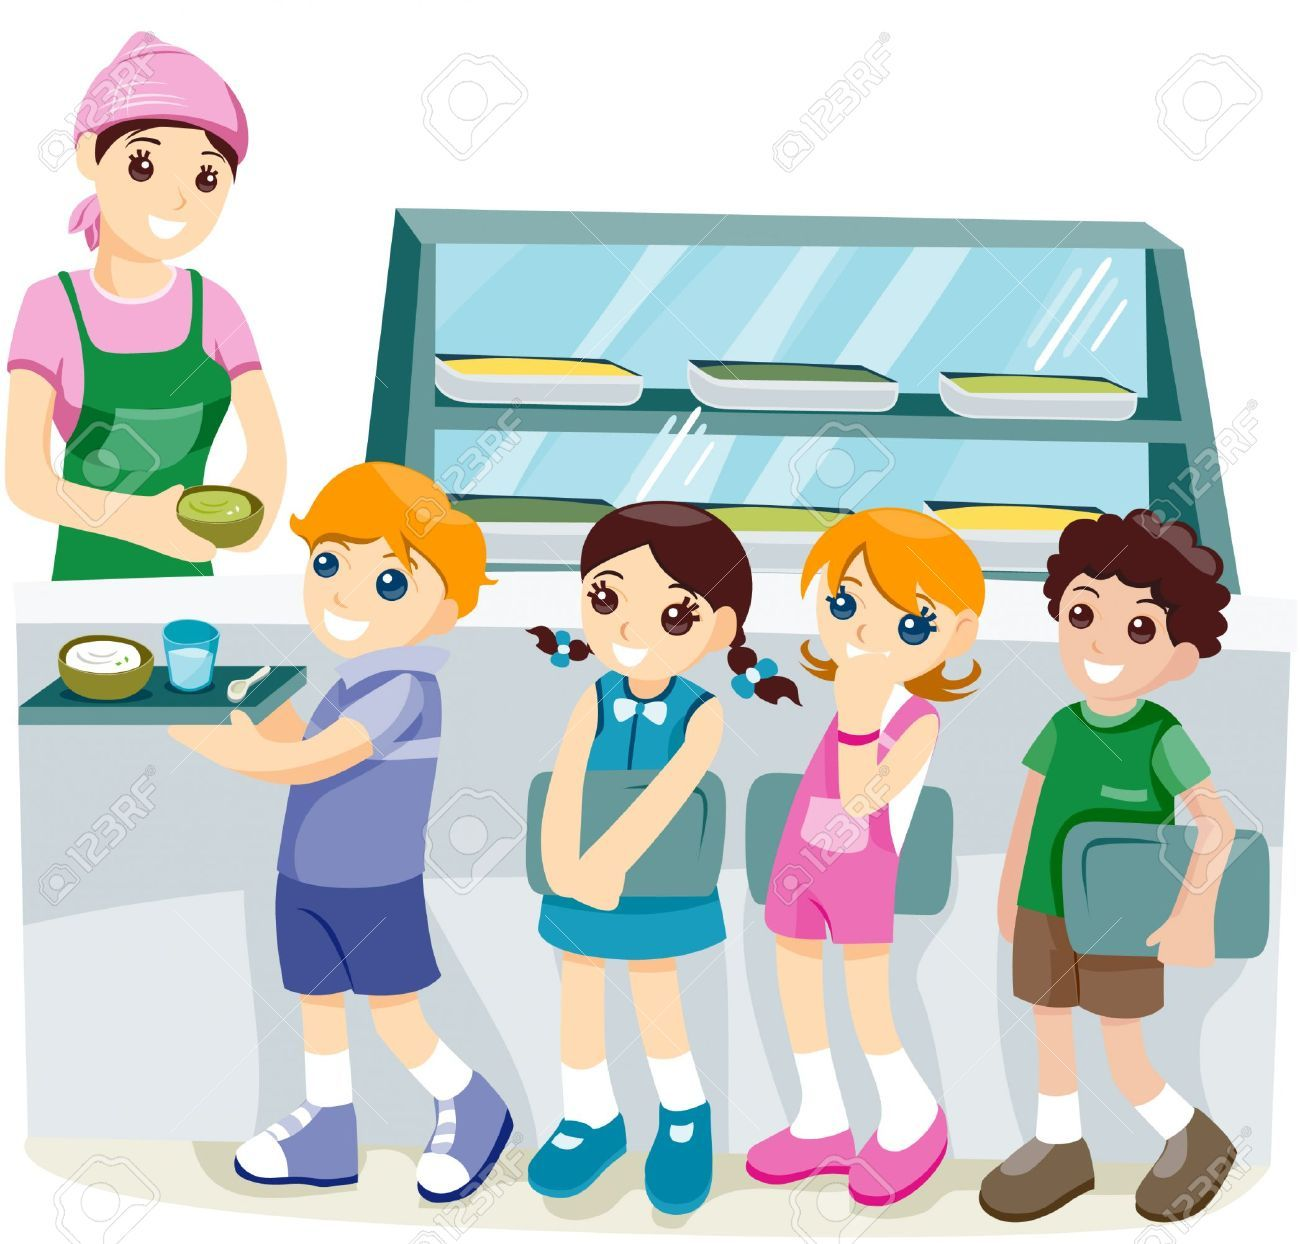 Cafeteria clipart canteen. Image result for rap